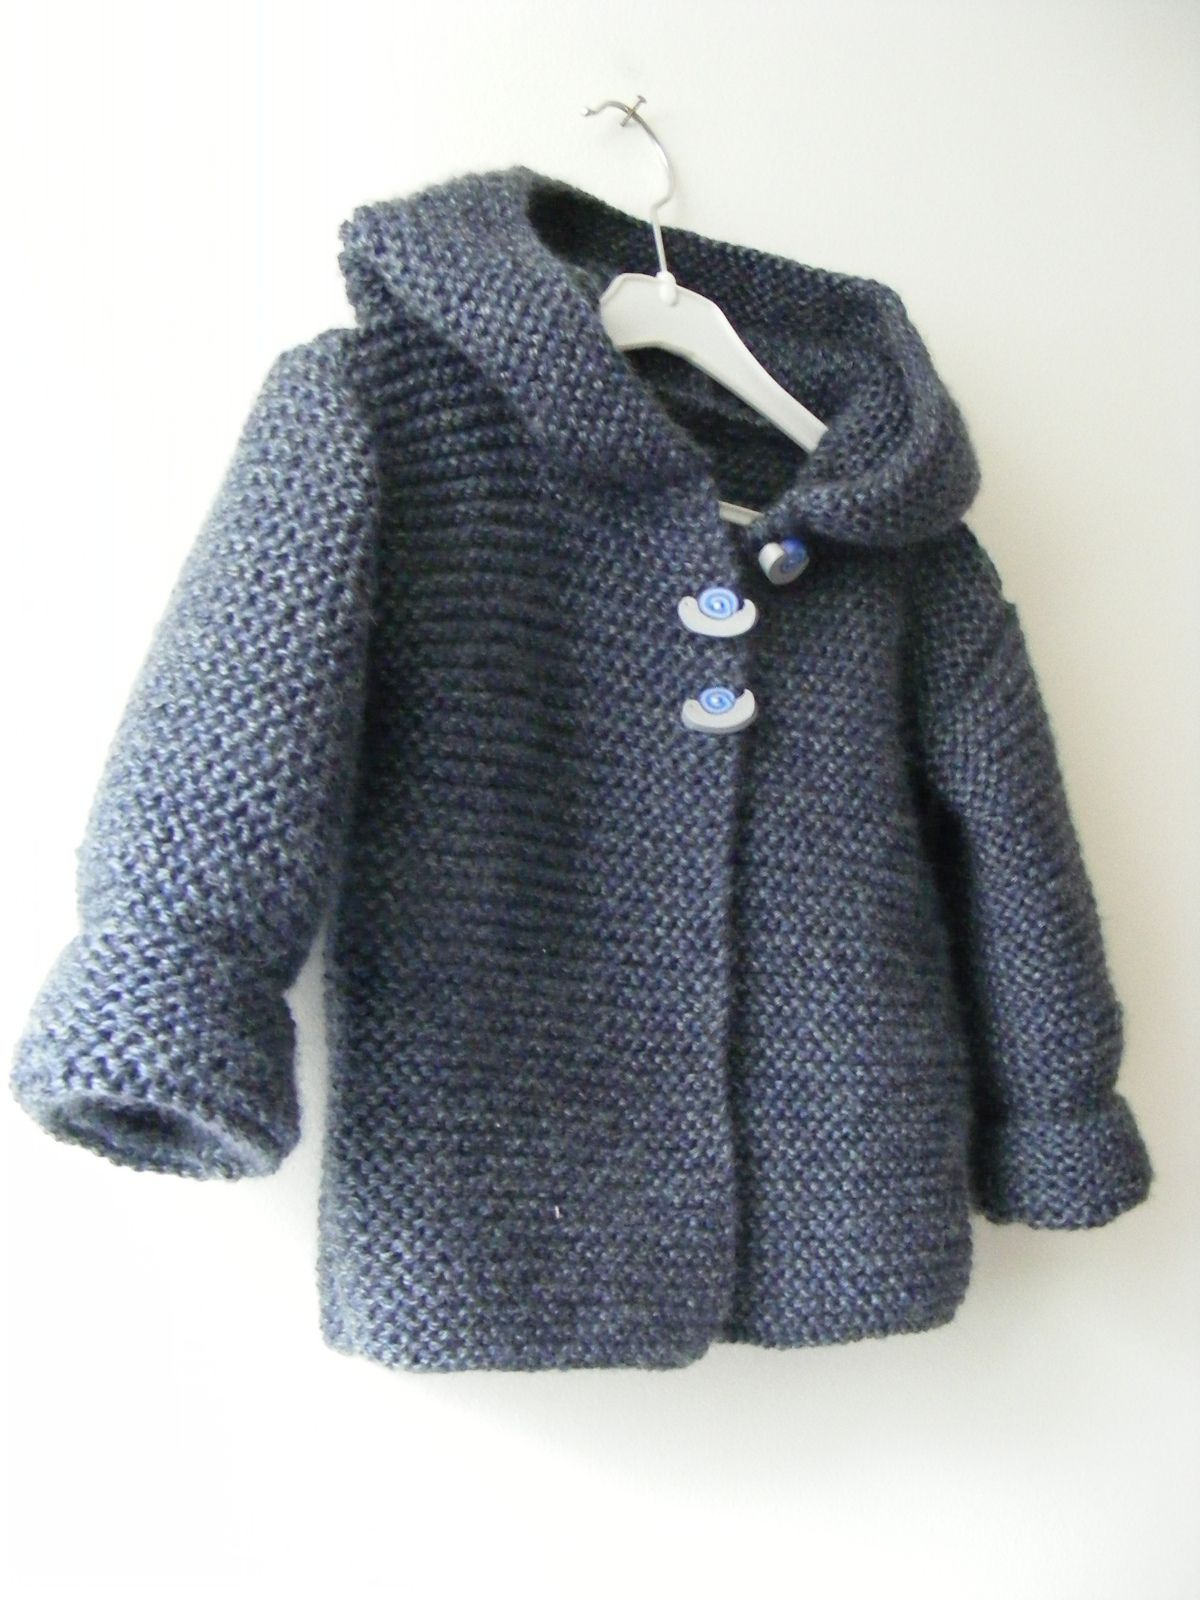 Paletot à capuche / Hooded baby jacket pattern by Mme ...